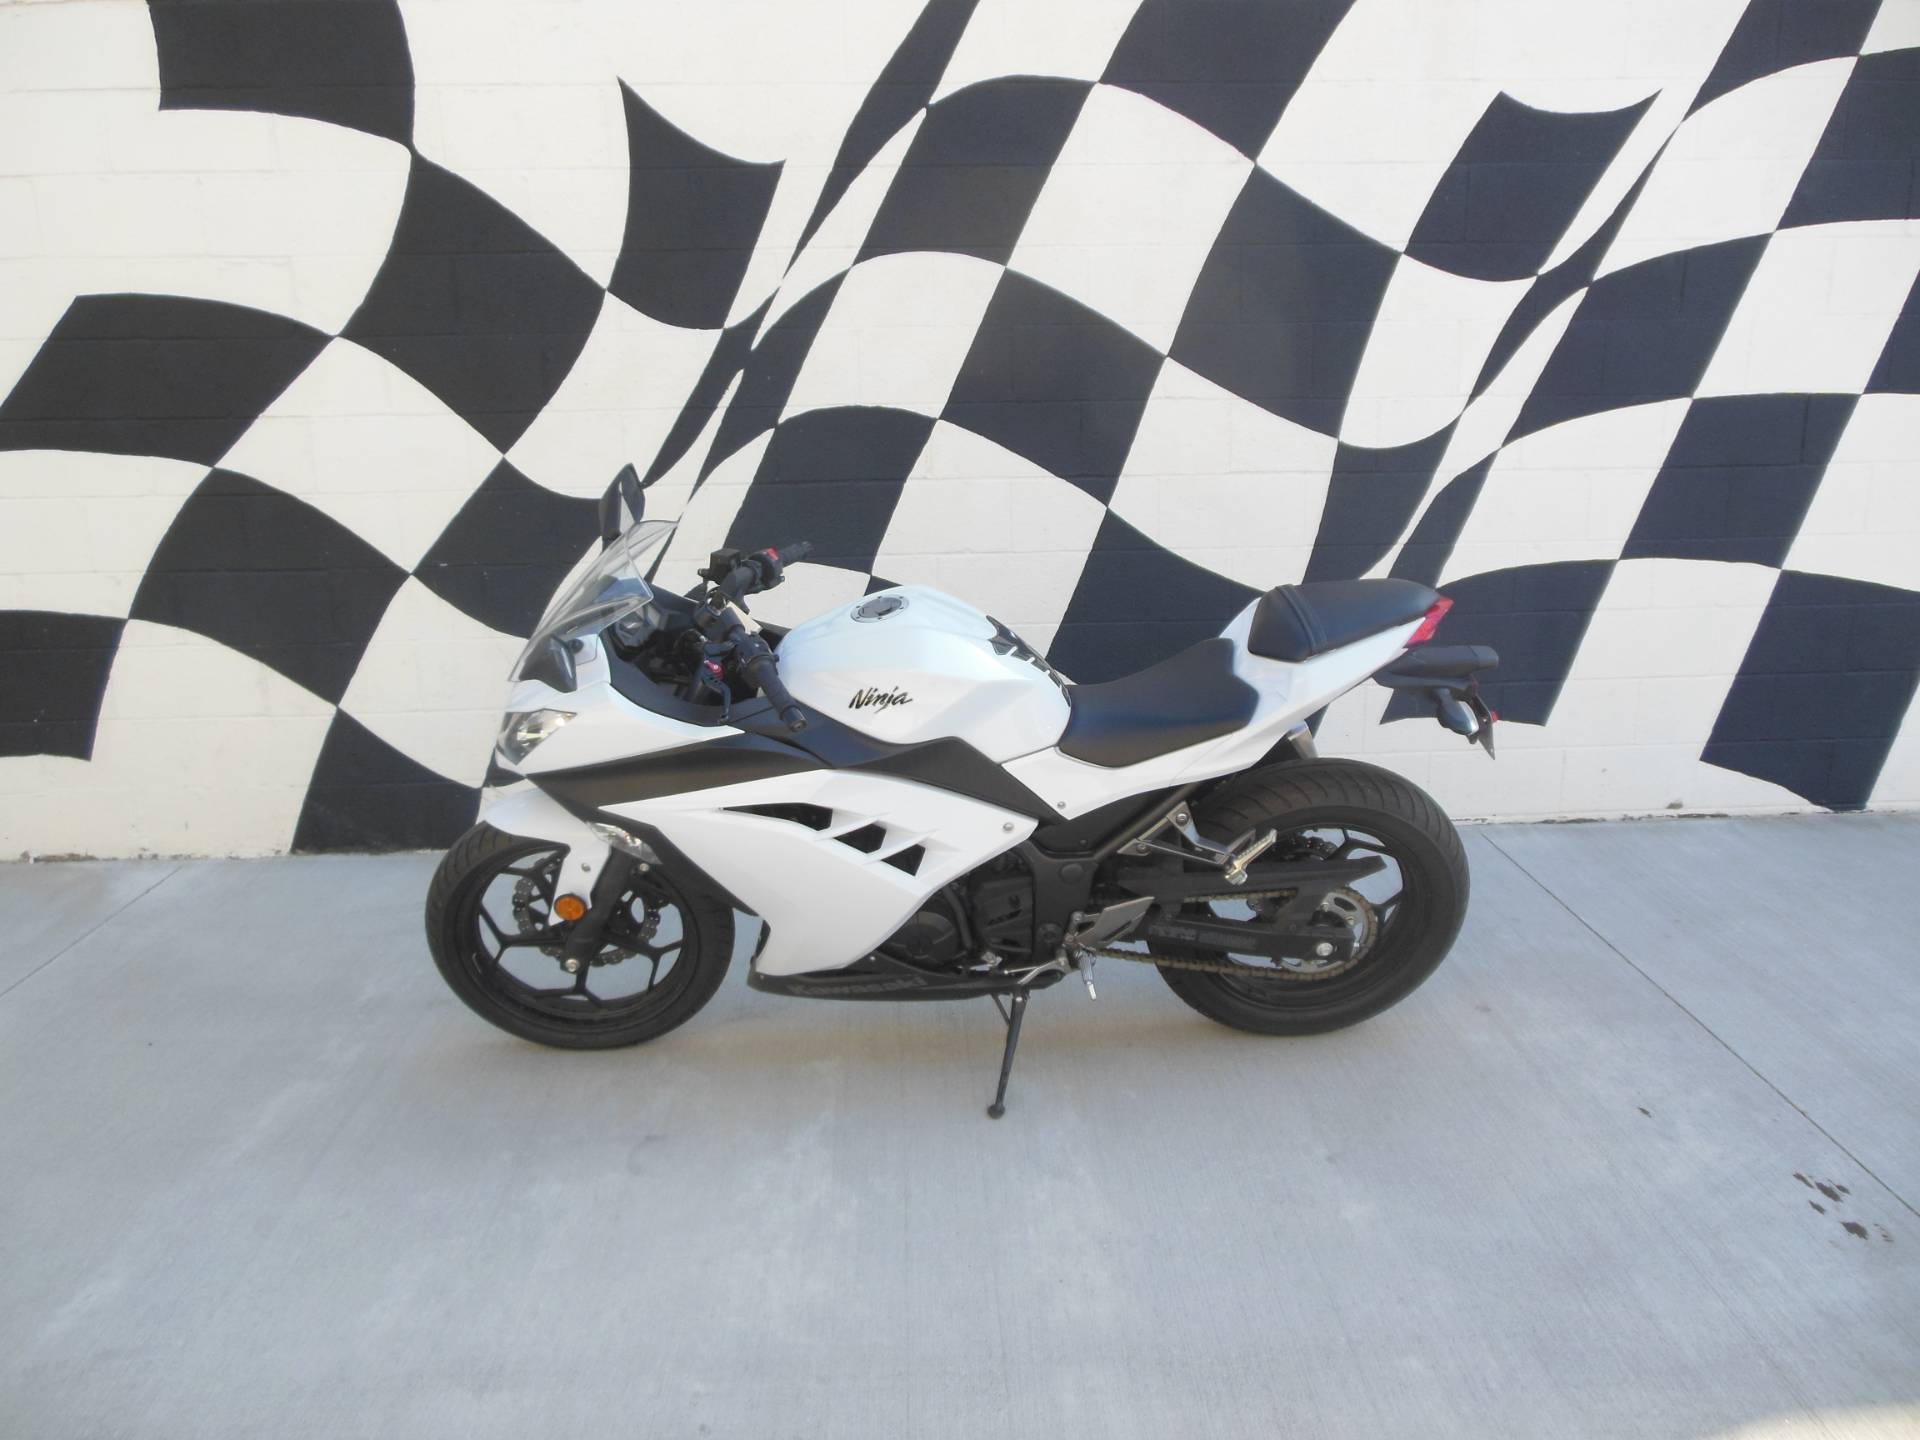 2013 Kawasaki Ninja 300 for sale 36302